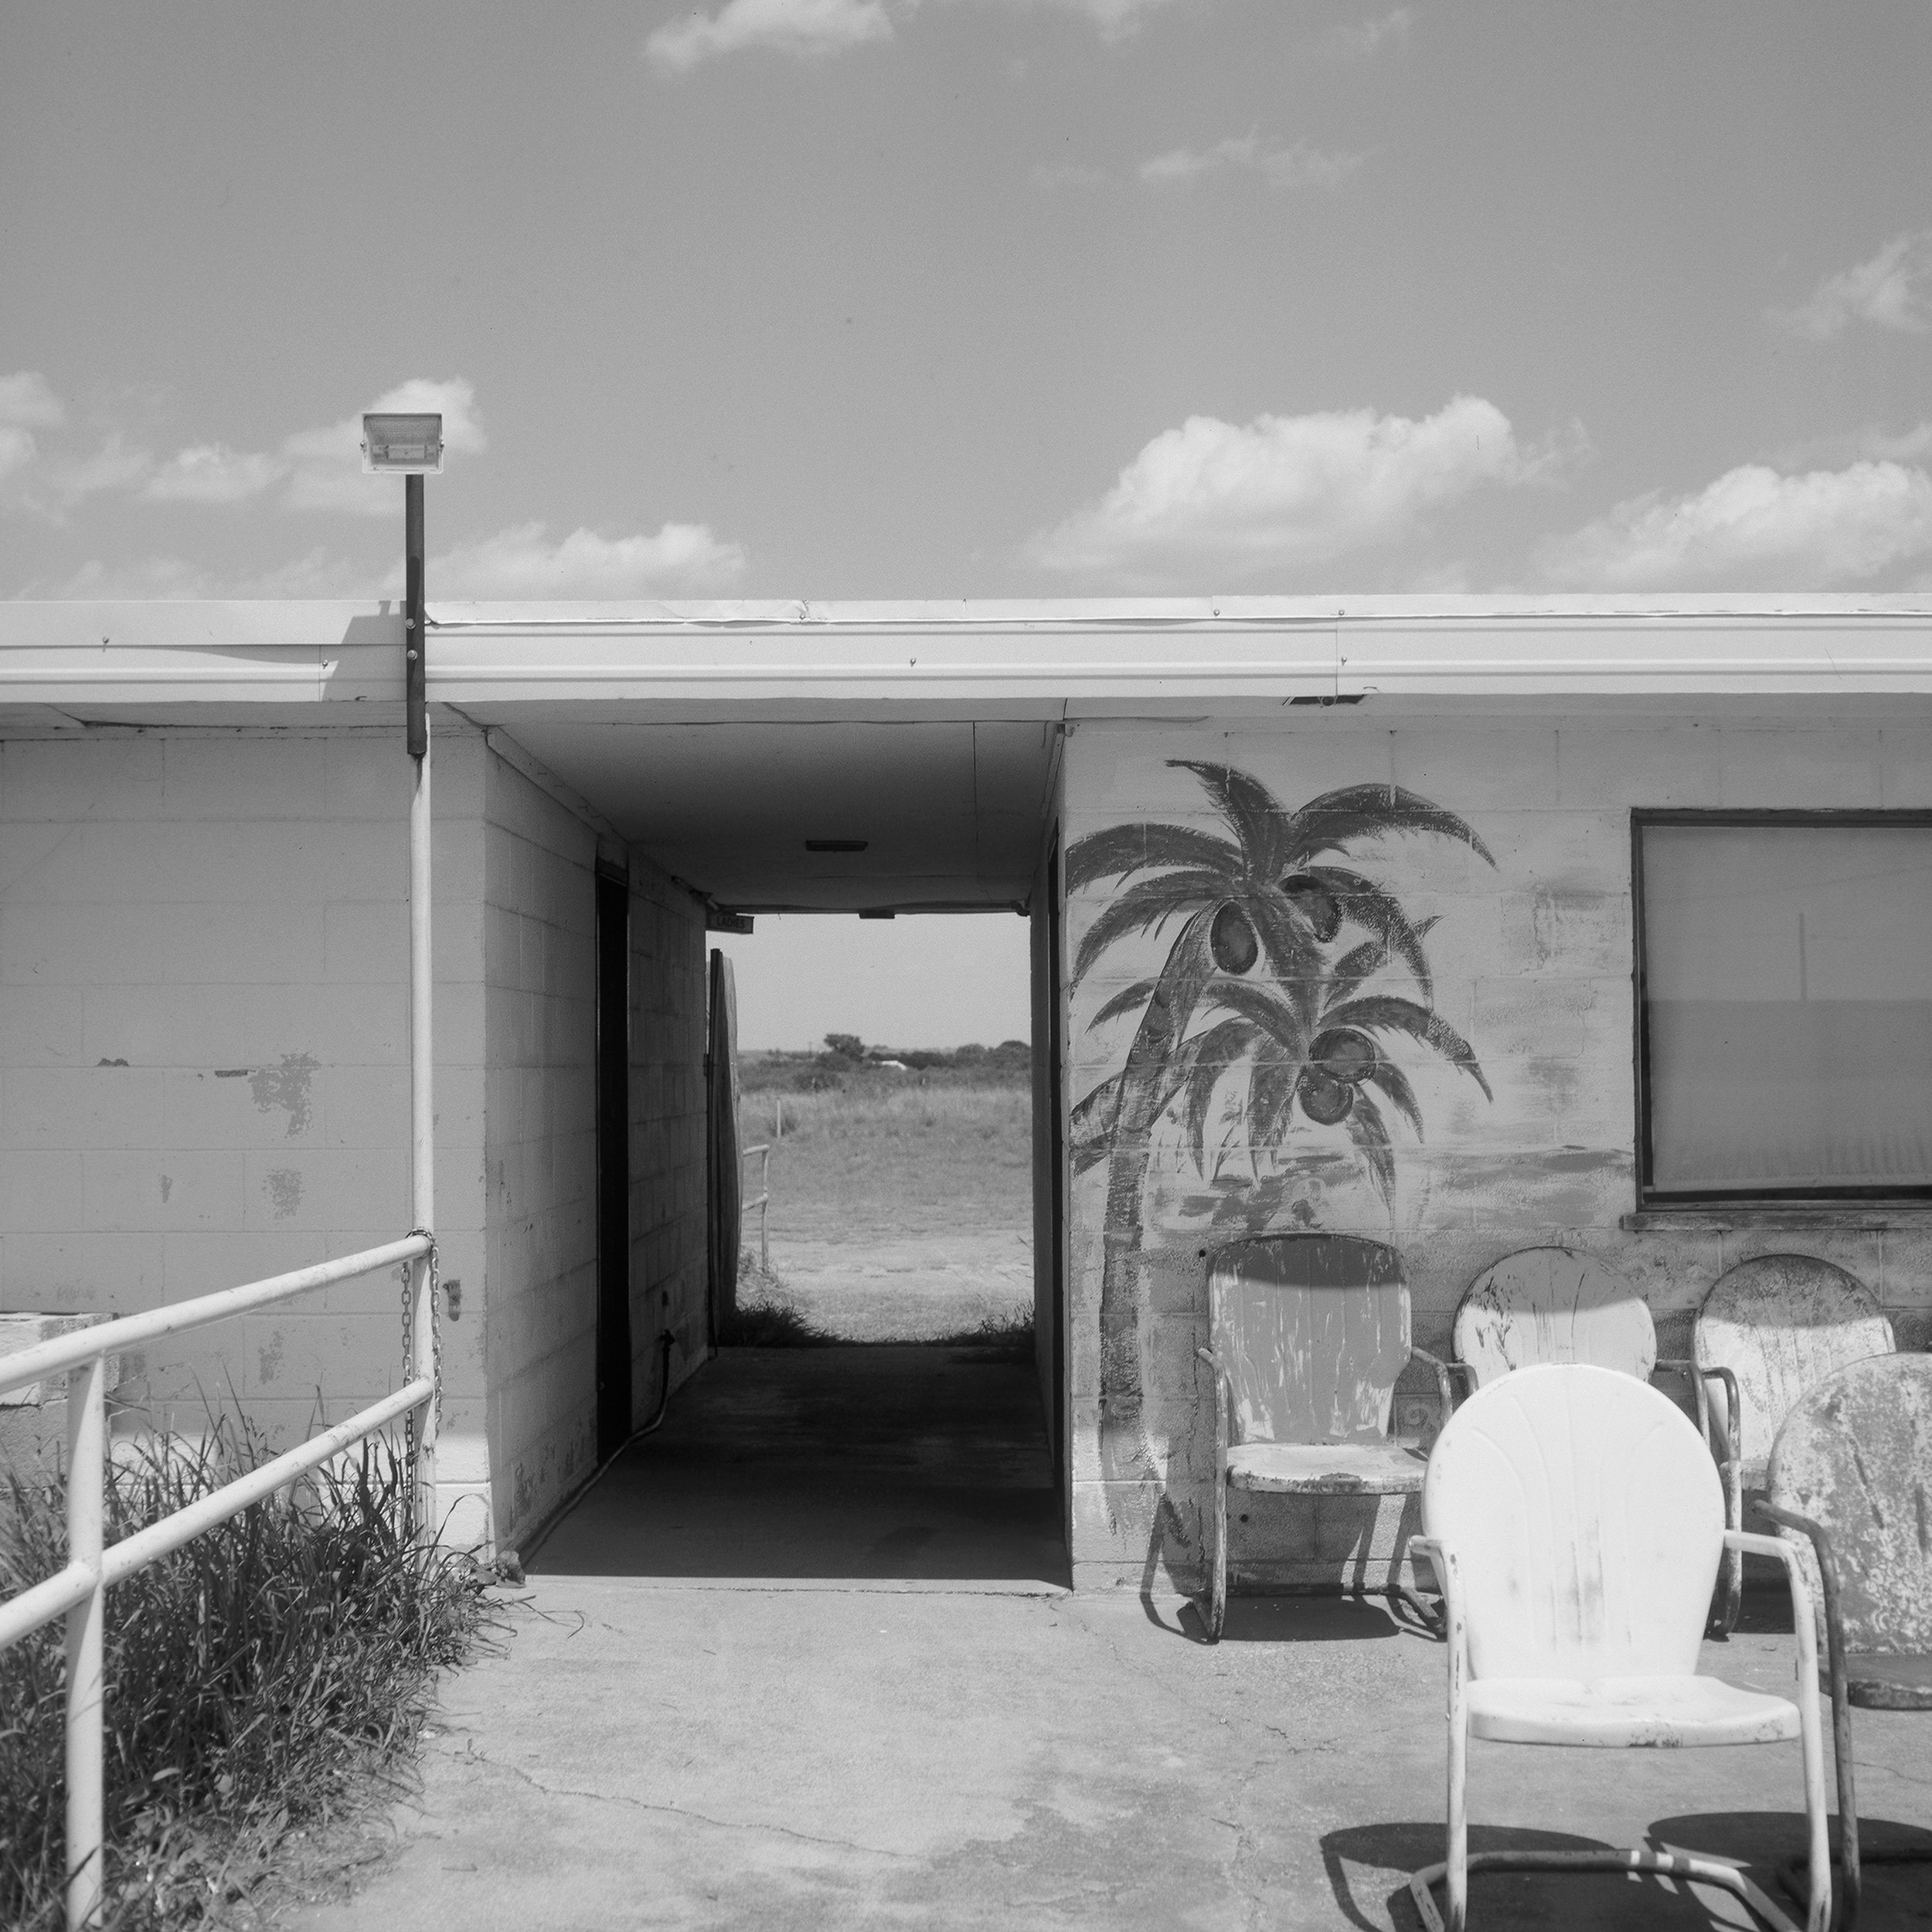 Inside Sandell, Clarendon, TX, Highway 287, 2017 - 120 Delta 100 (6x6)